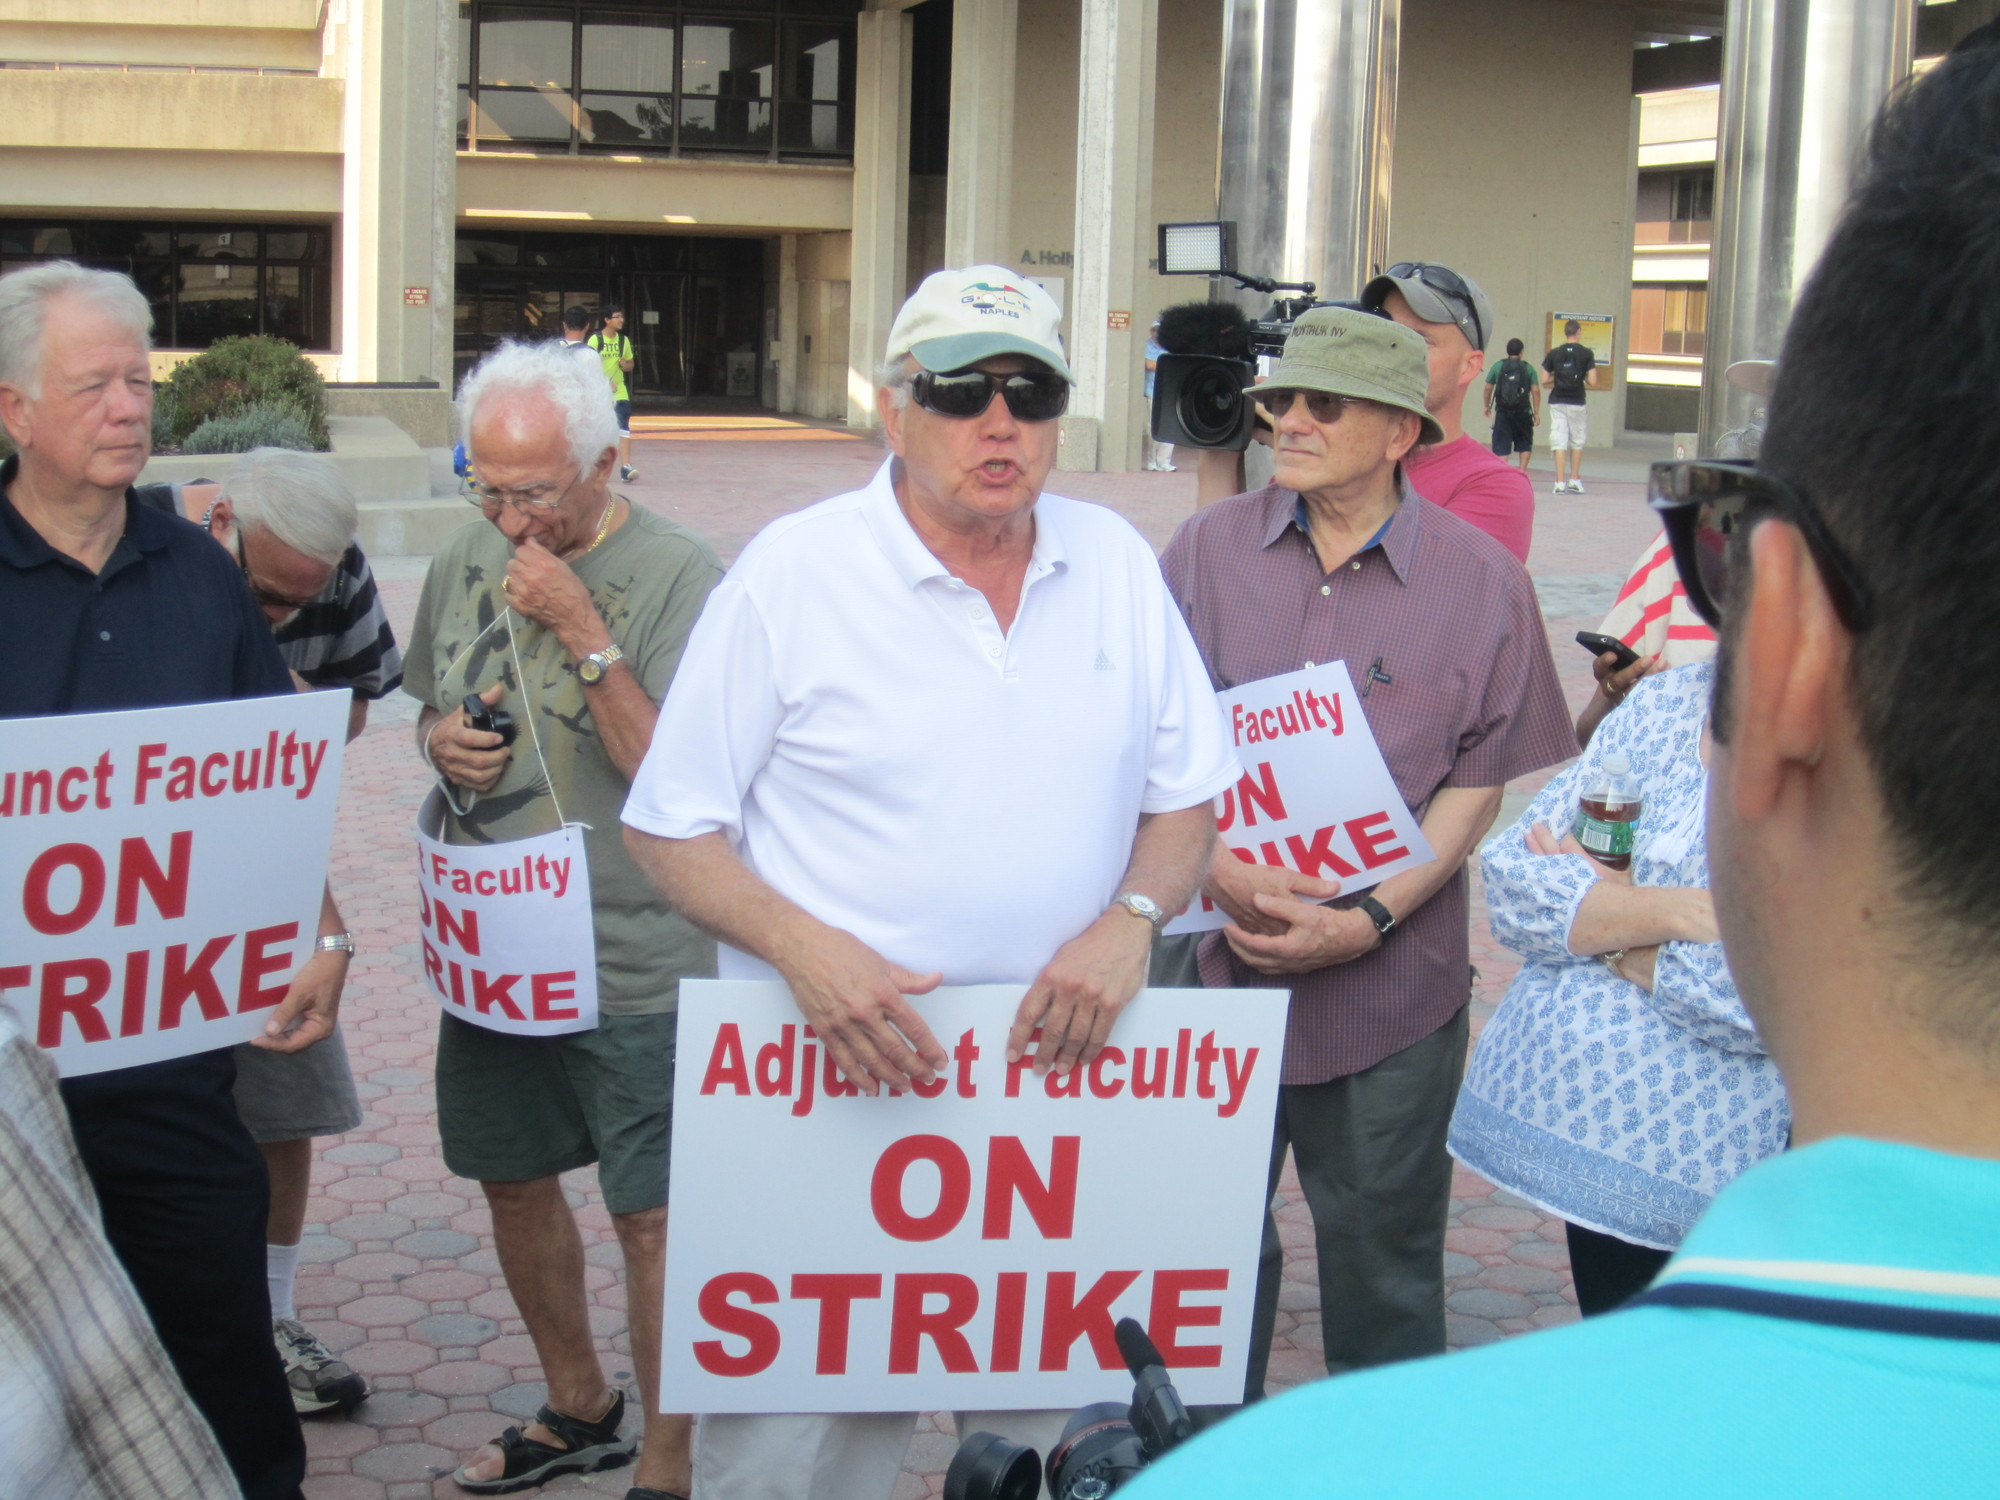 Charles Loiacono, president of the Adjunct Faculty Association, addressed AFA members on Sept. 11 outside Nassau Community College's administration tower.